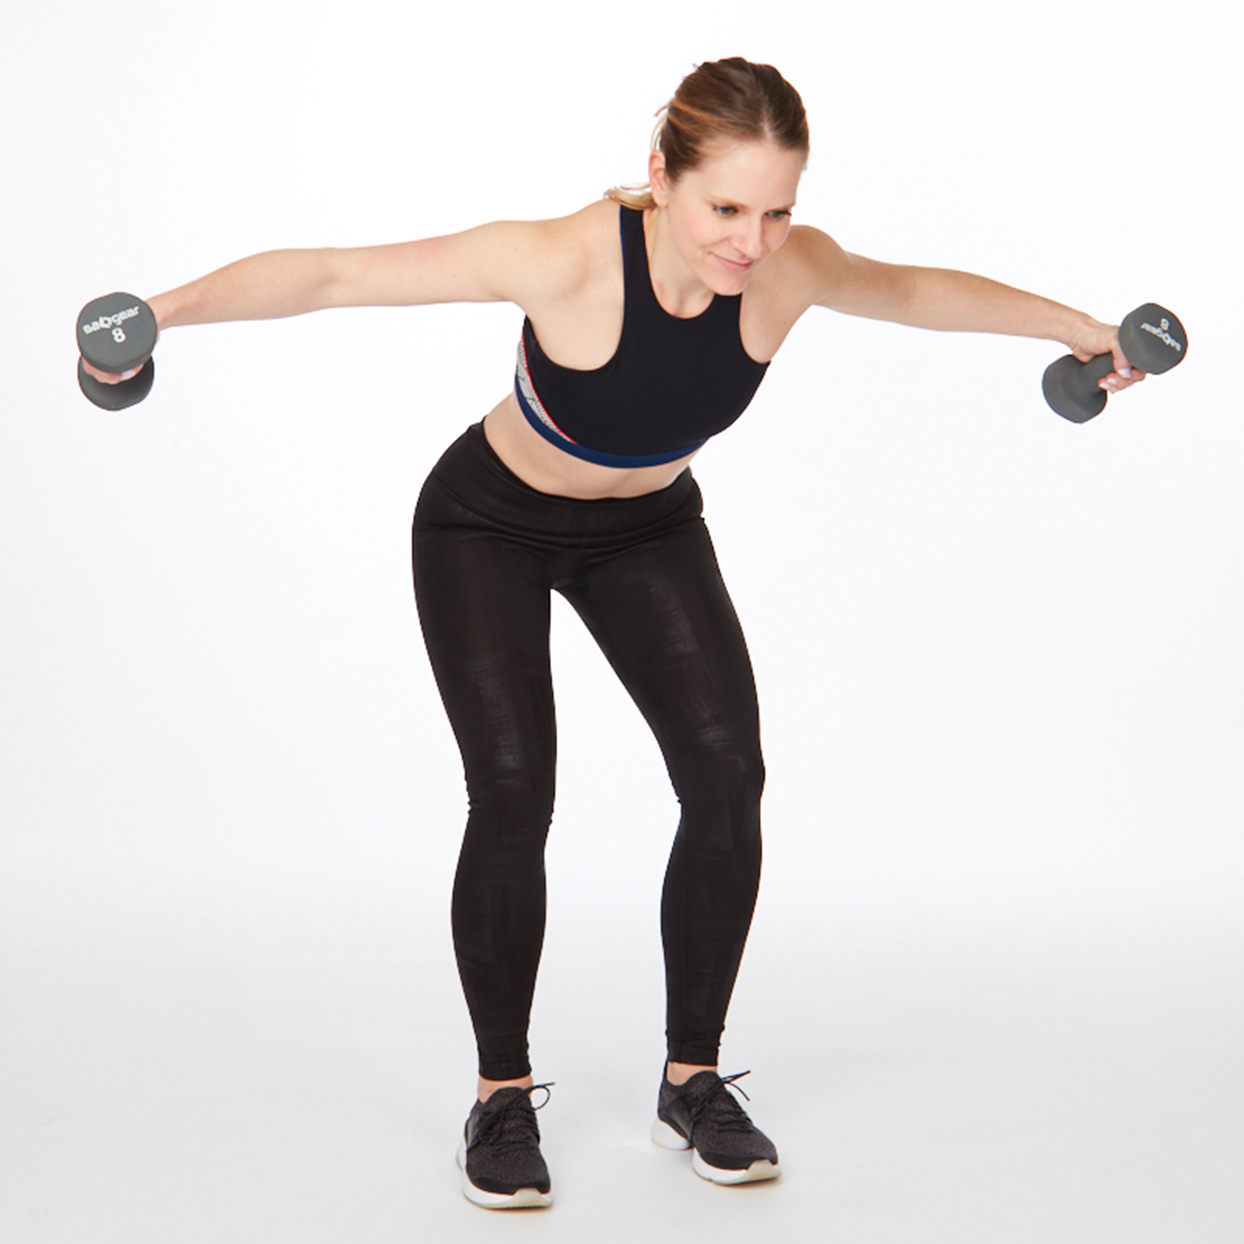 8 At-Home Back Exercises for a Stronger Upper Body